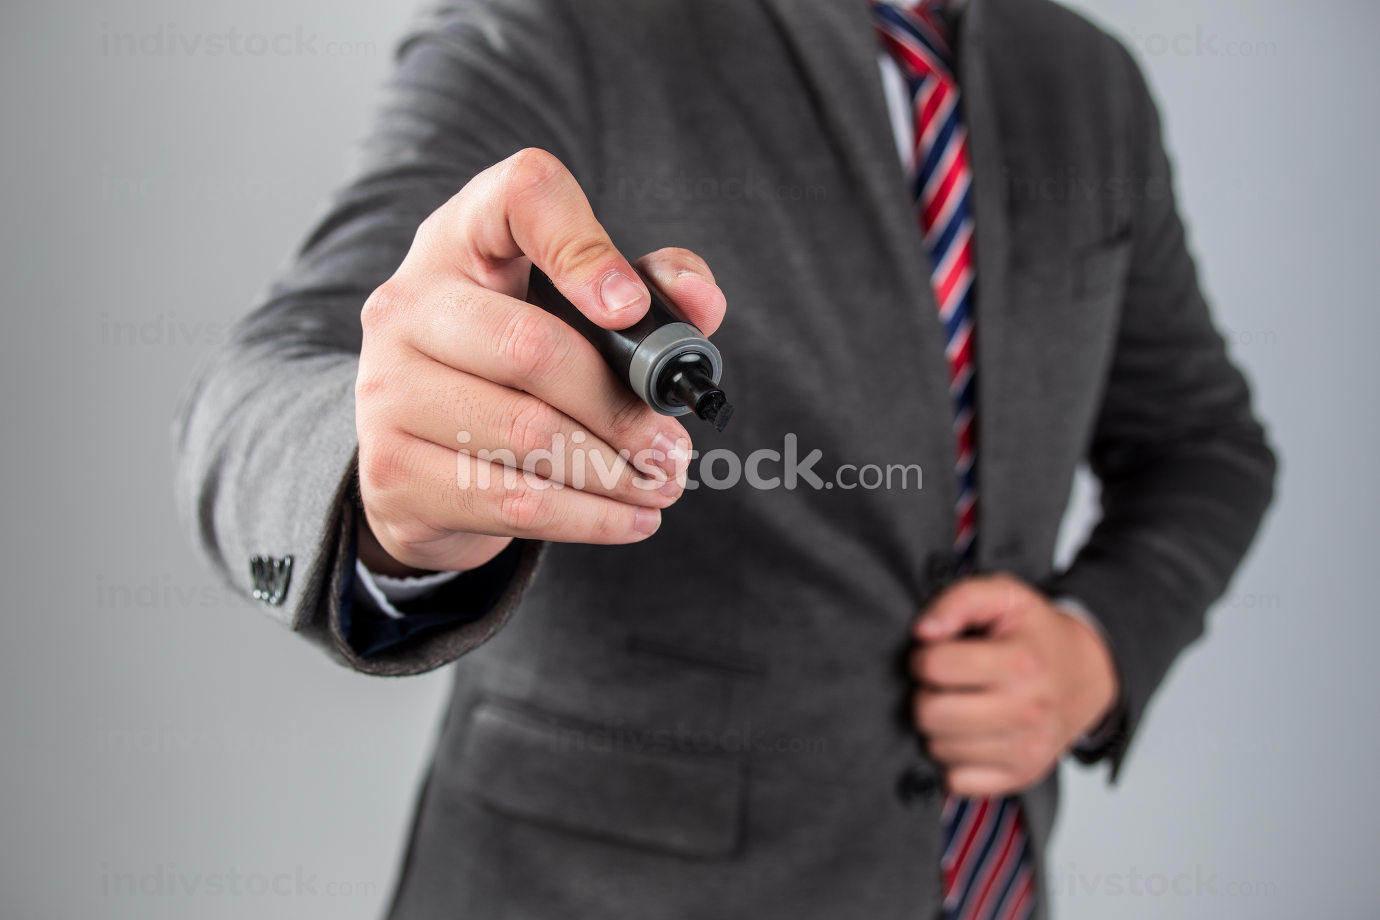 Businessman standing posture hand hold a pen isolated on over grey background